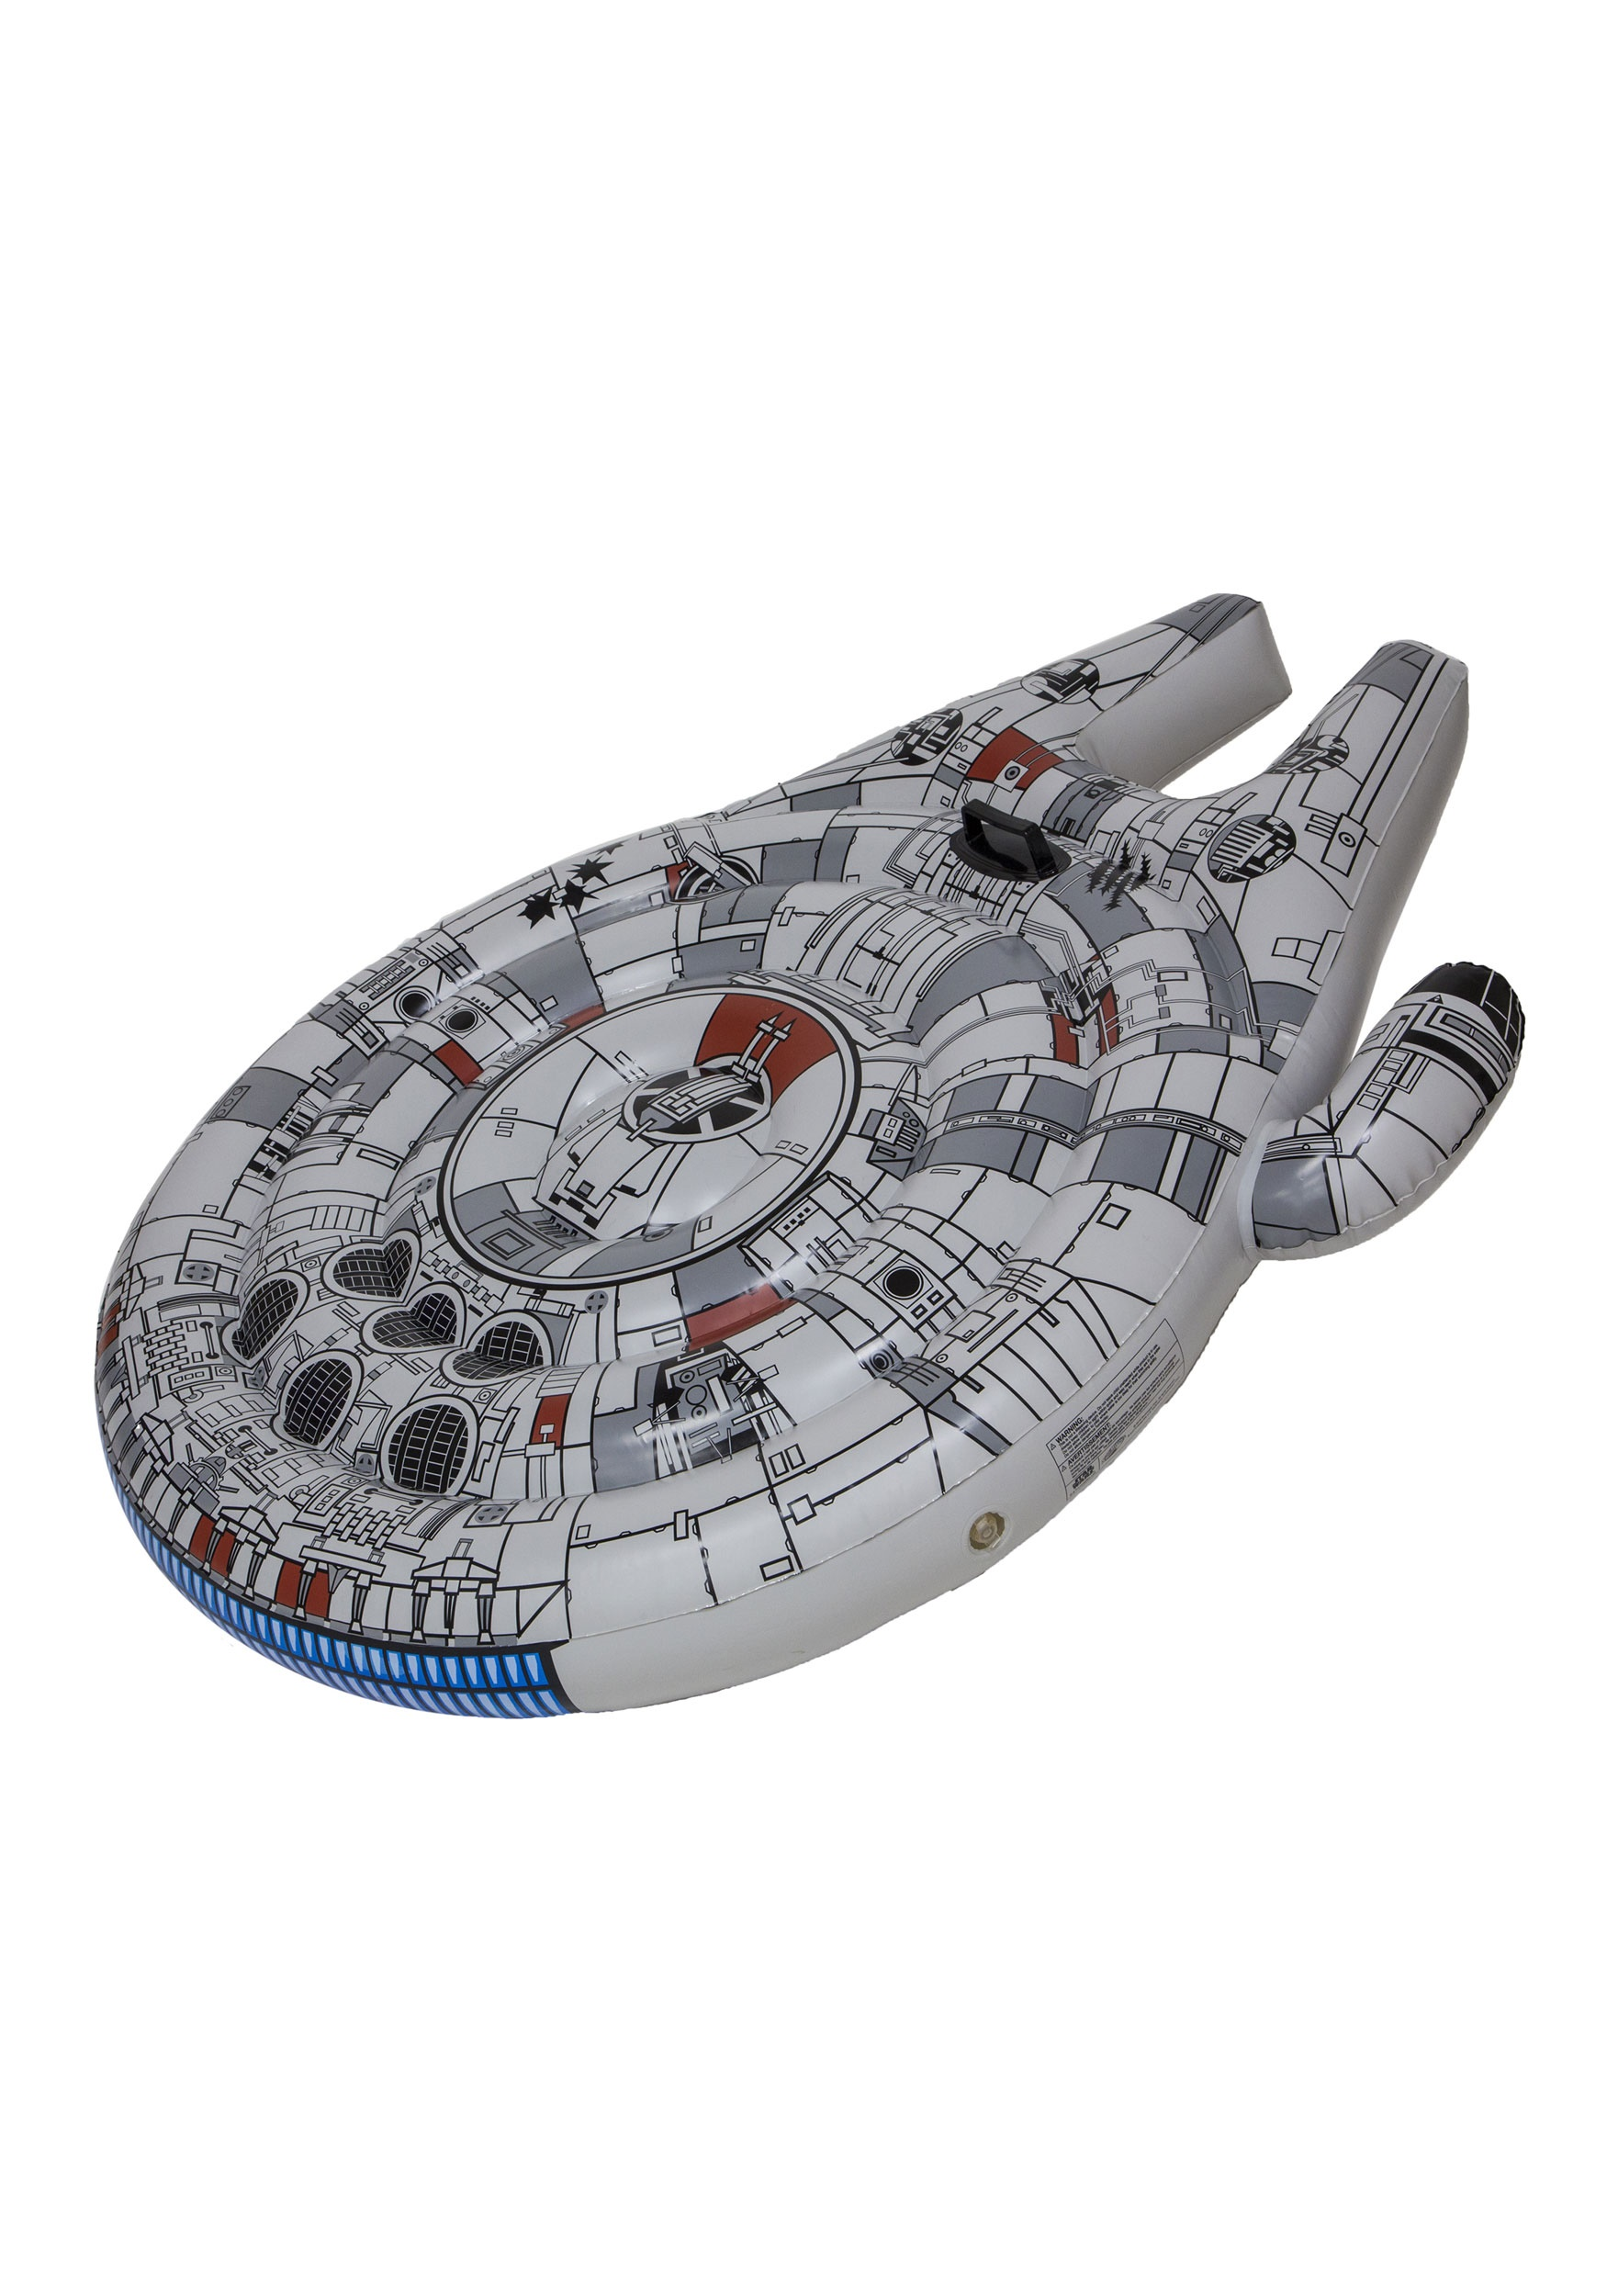 Star Wars Millennium Falcon Ride-On Inflatable pool toy